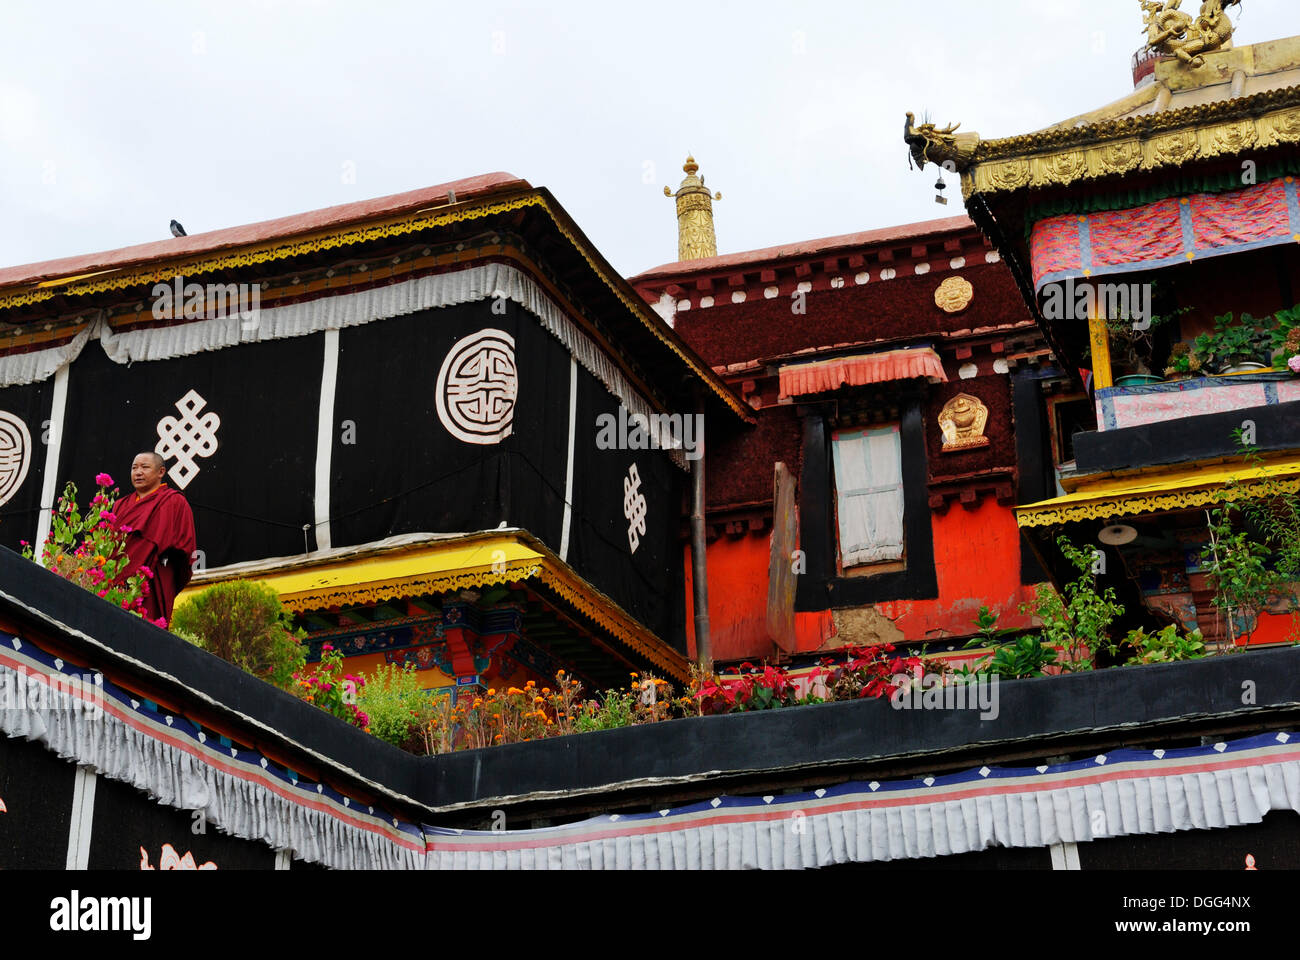 Roofs with golden turrets, main entrance of Jokhang Temple, Lhasa, Tibet, China, Asia Stock Photo